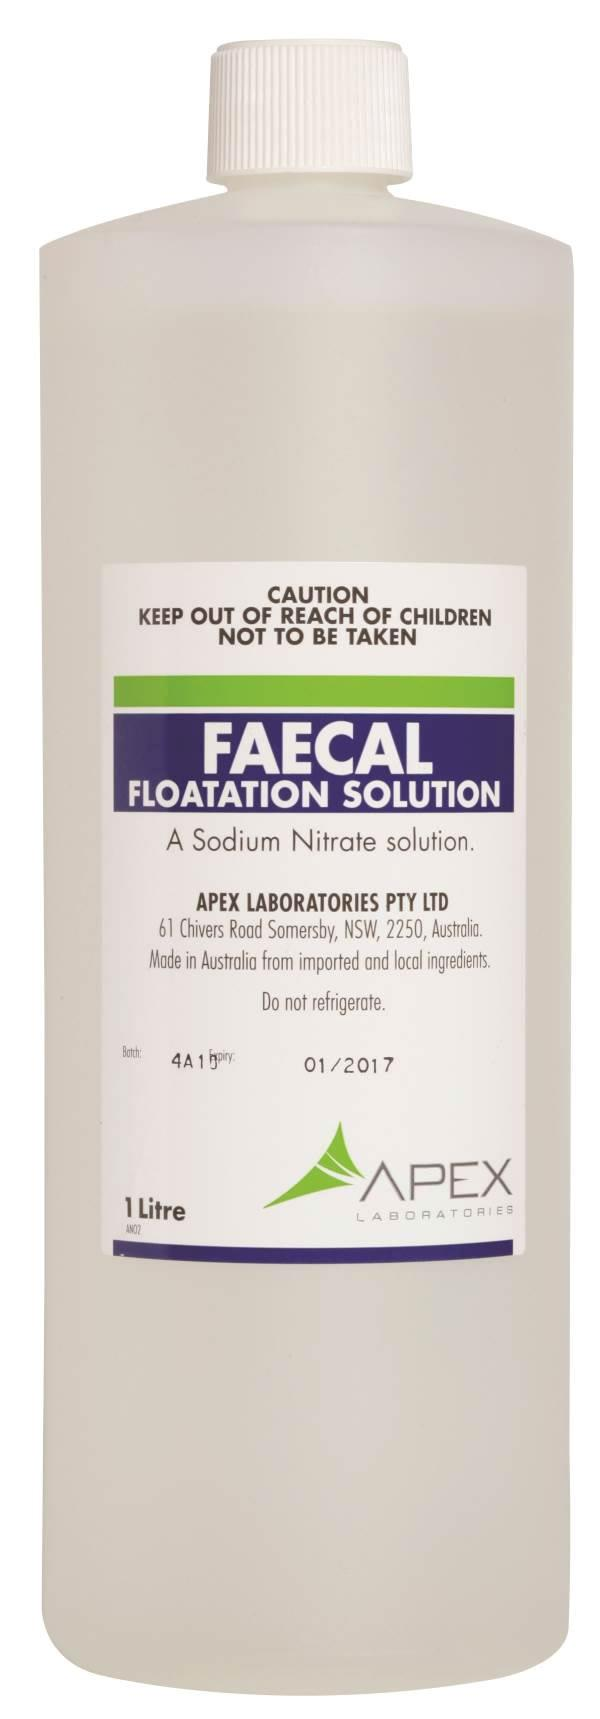 Faecal Flotation Solution